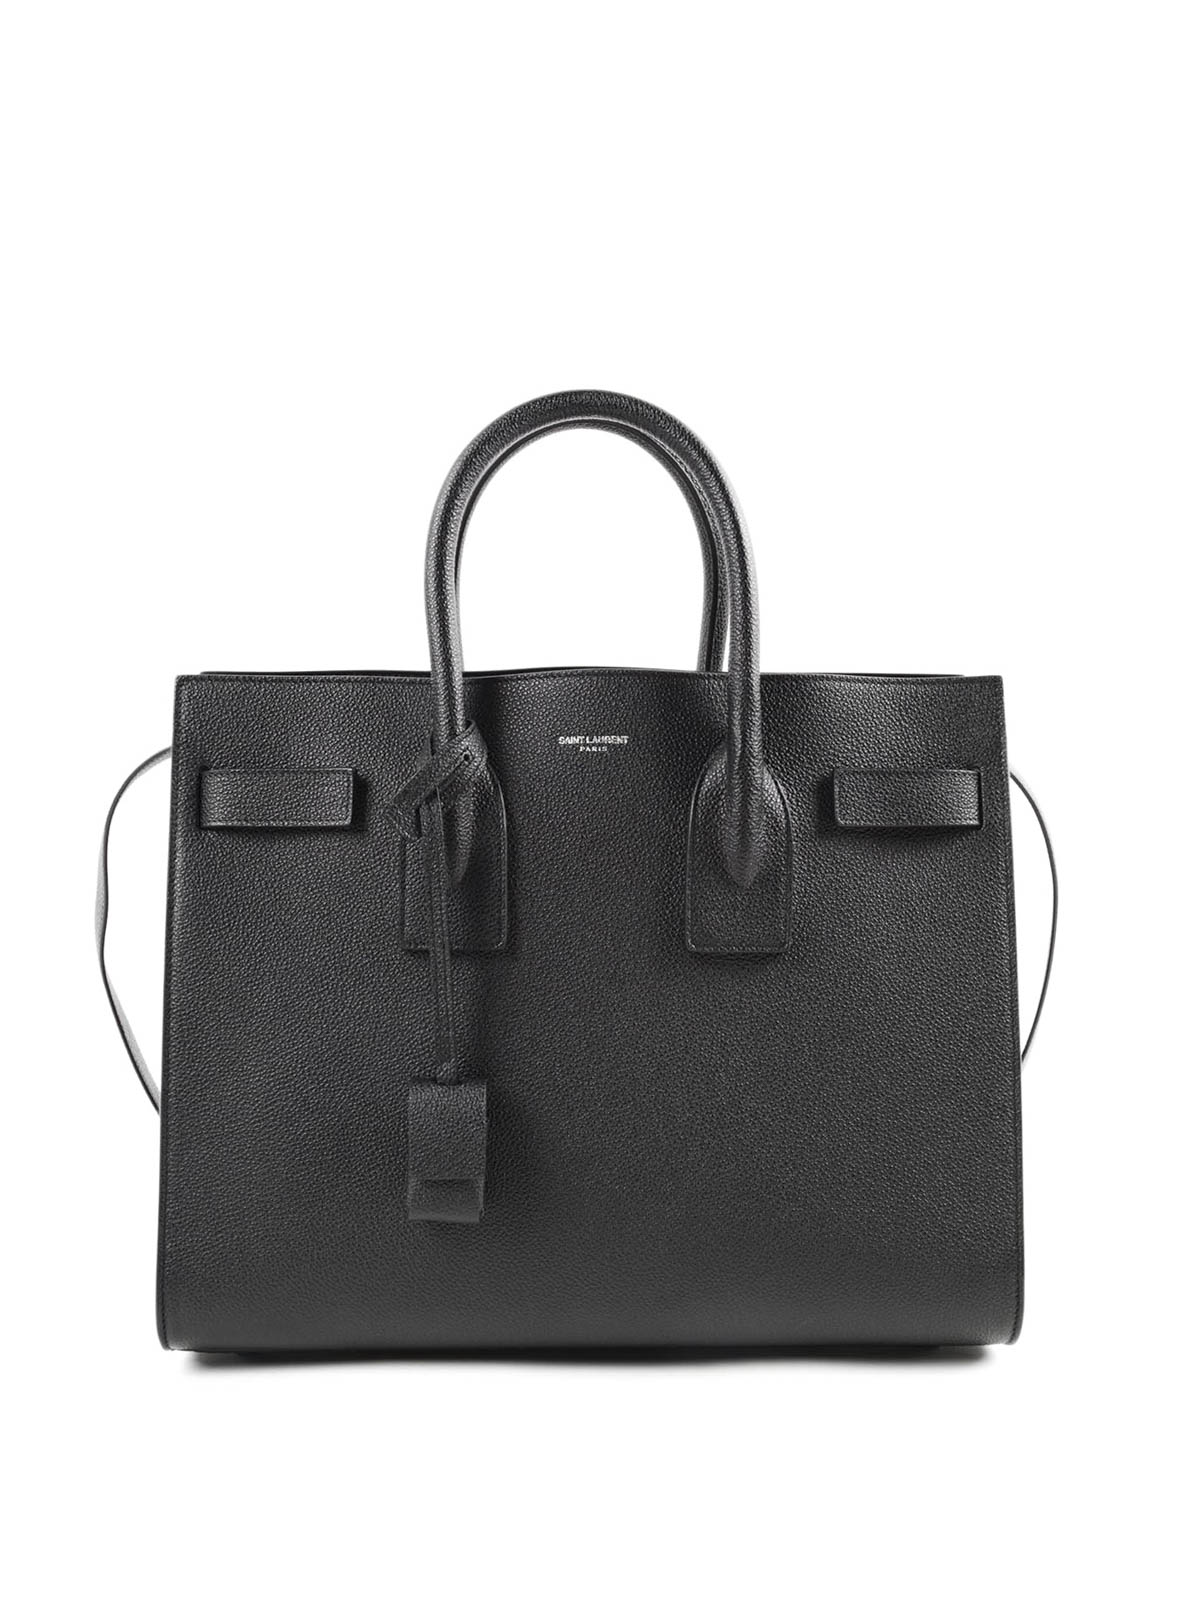 sac de jour grained leather bag by saint laurent totes bags ikrix. Black Bedroom Furniture Sets. Home Design Ideas